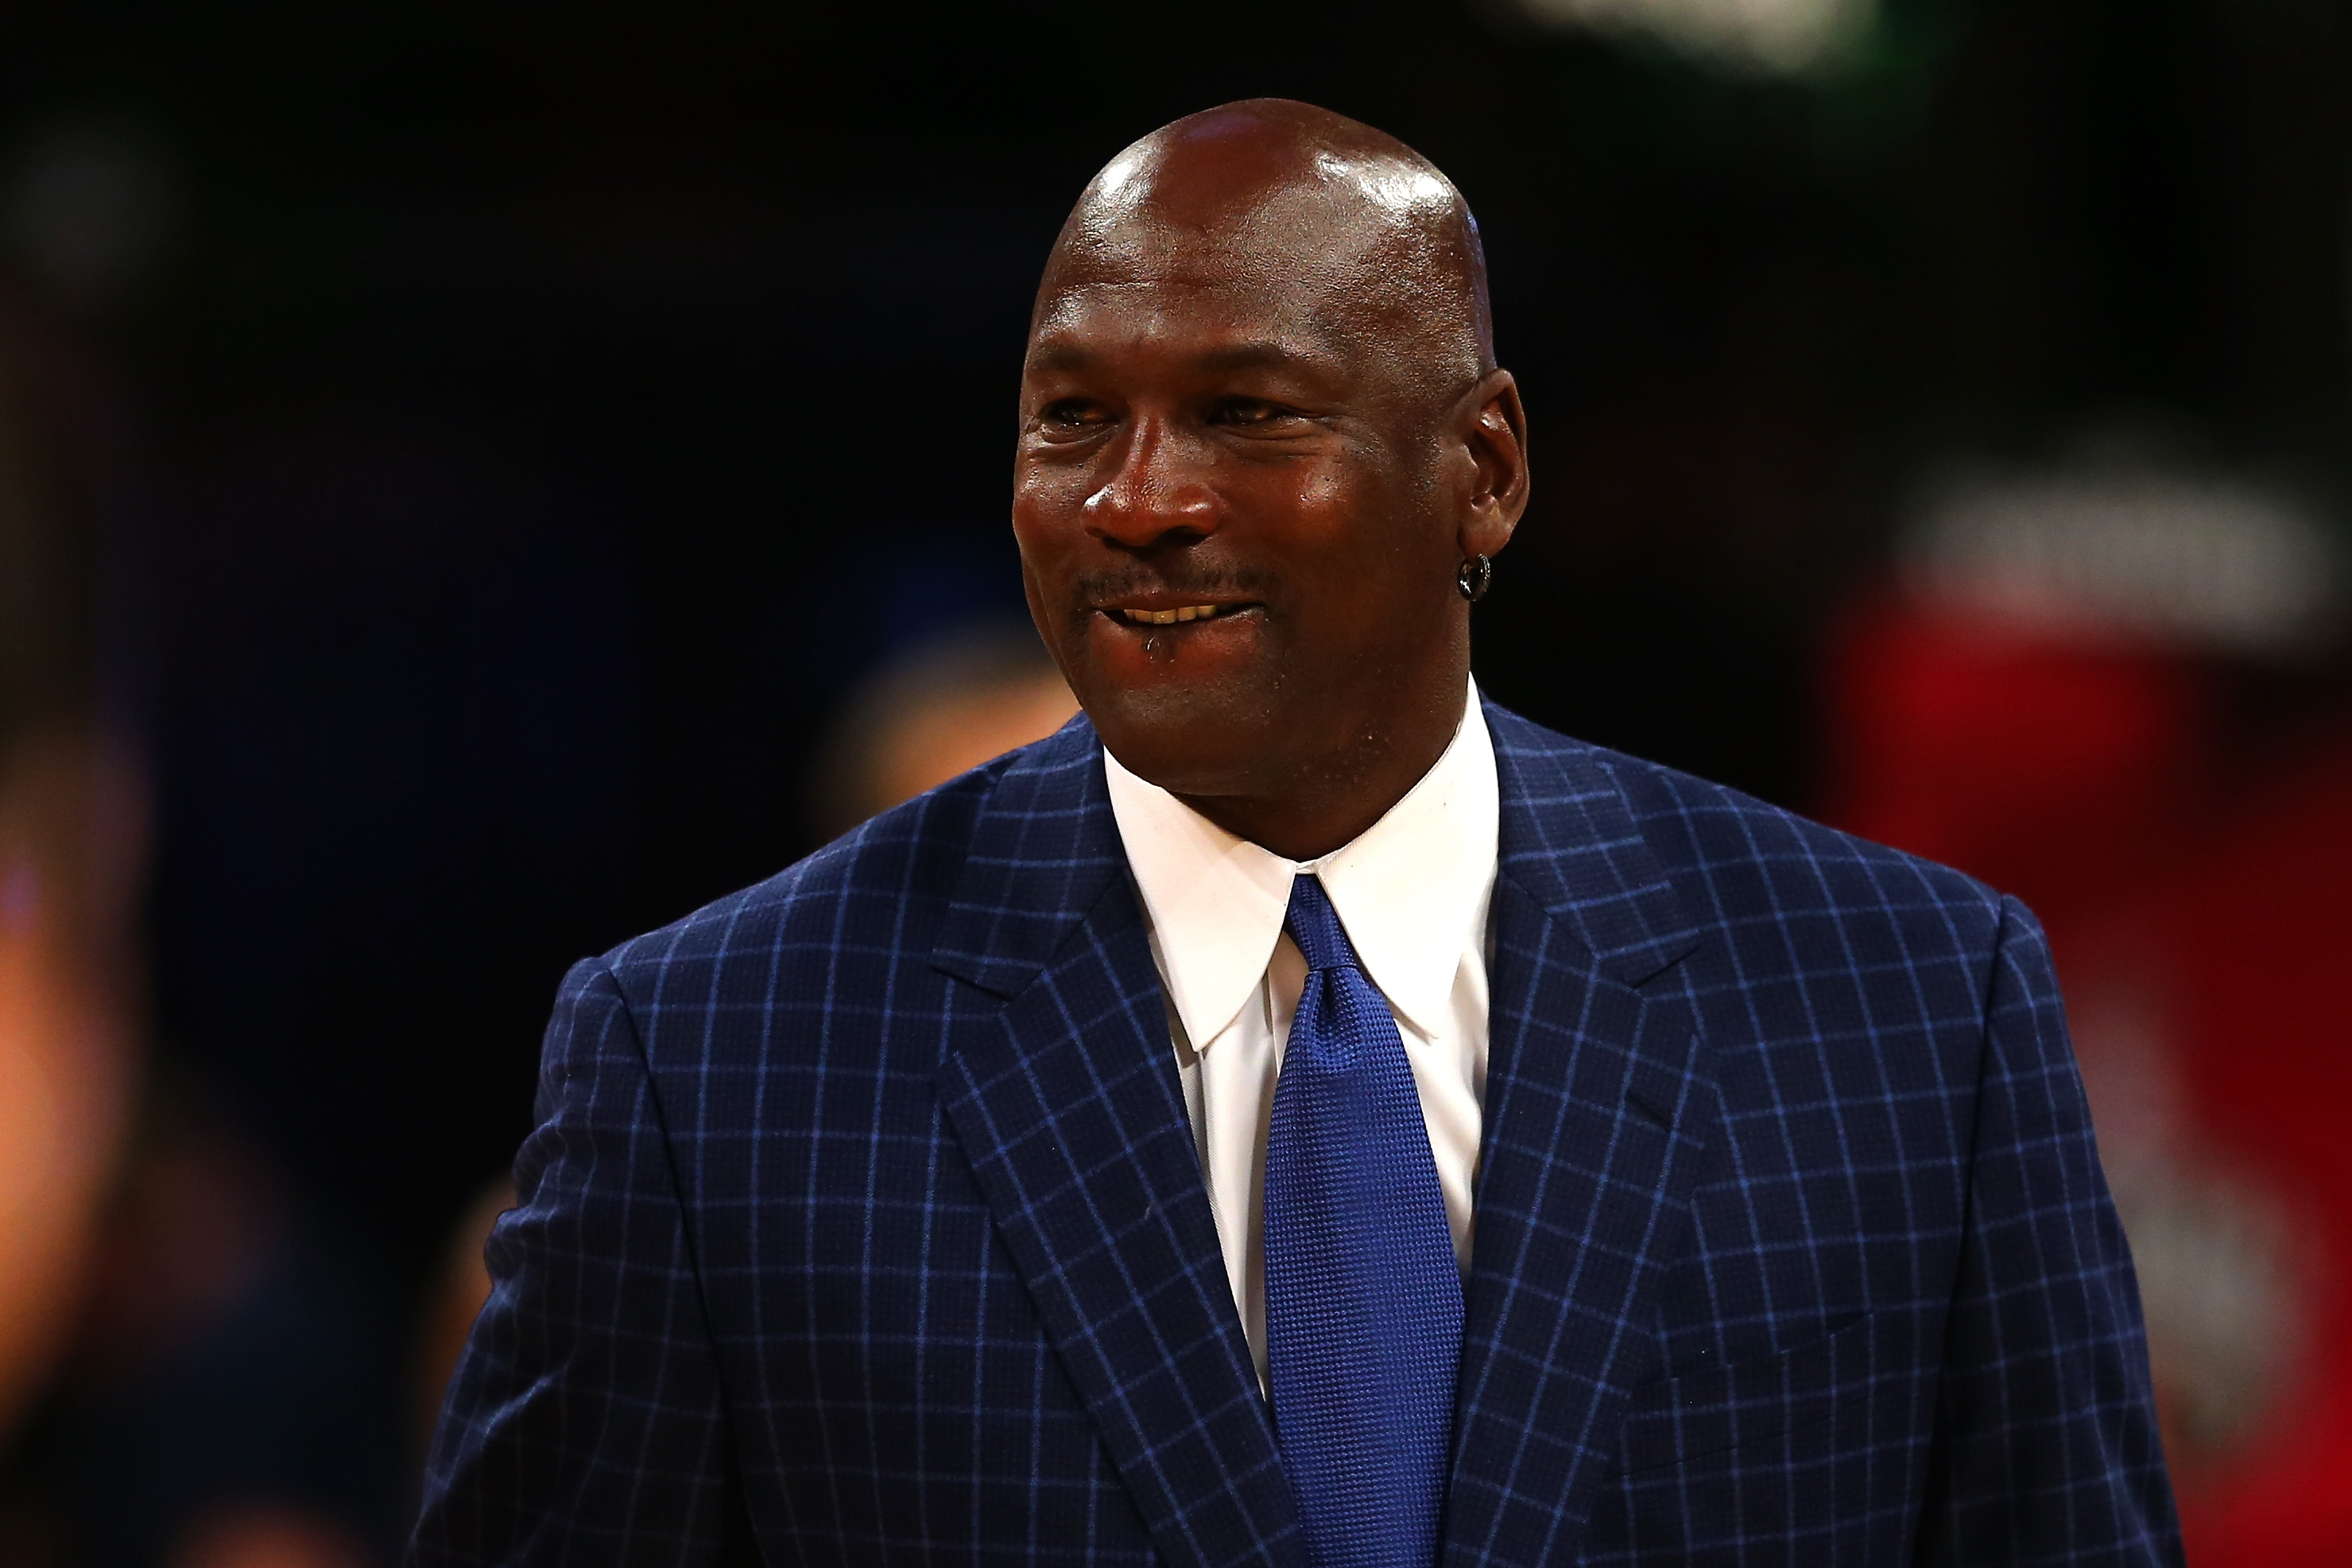 Michael Jordan Donates $7 Million to Build Clinics in Troubled Areas of Charlotte